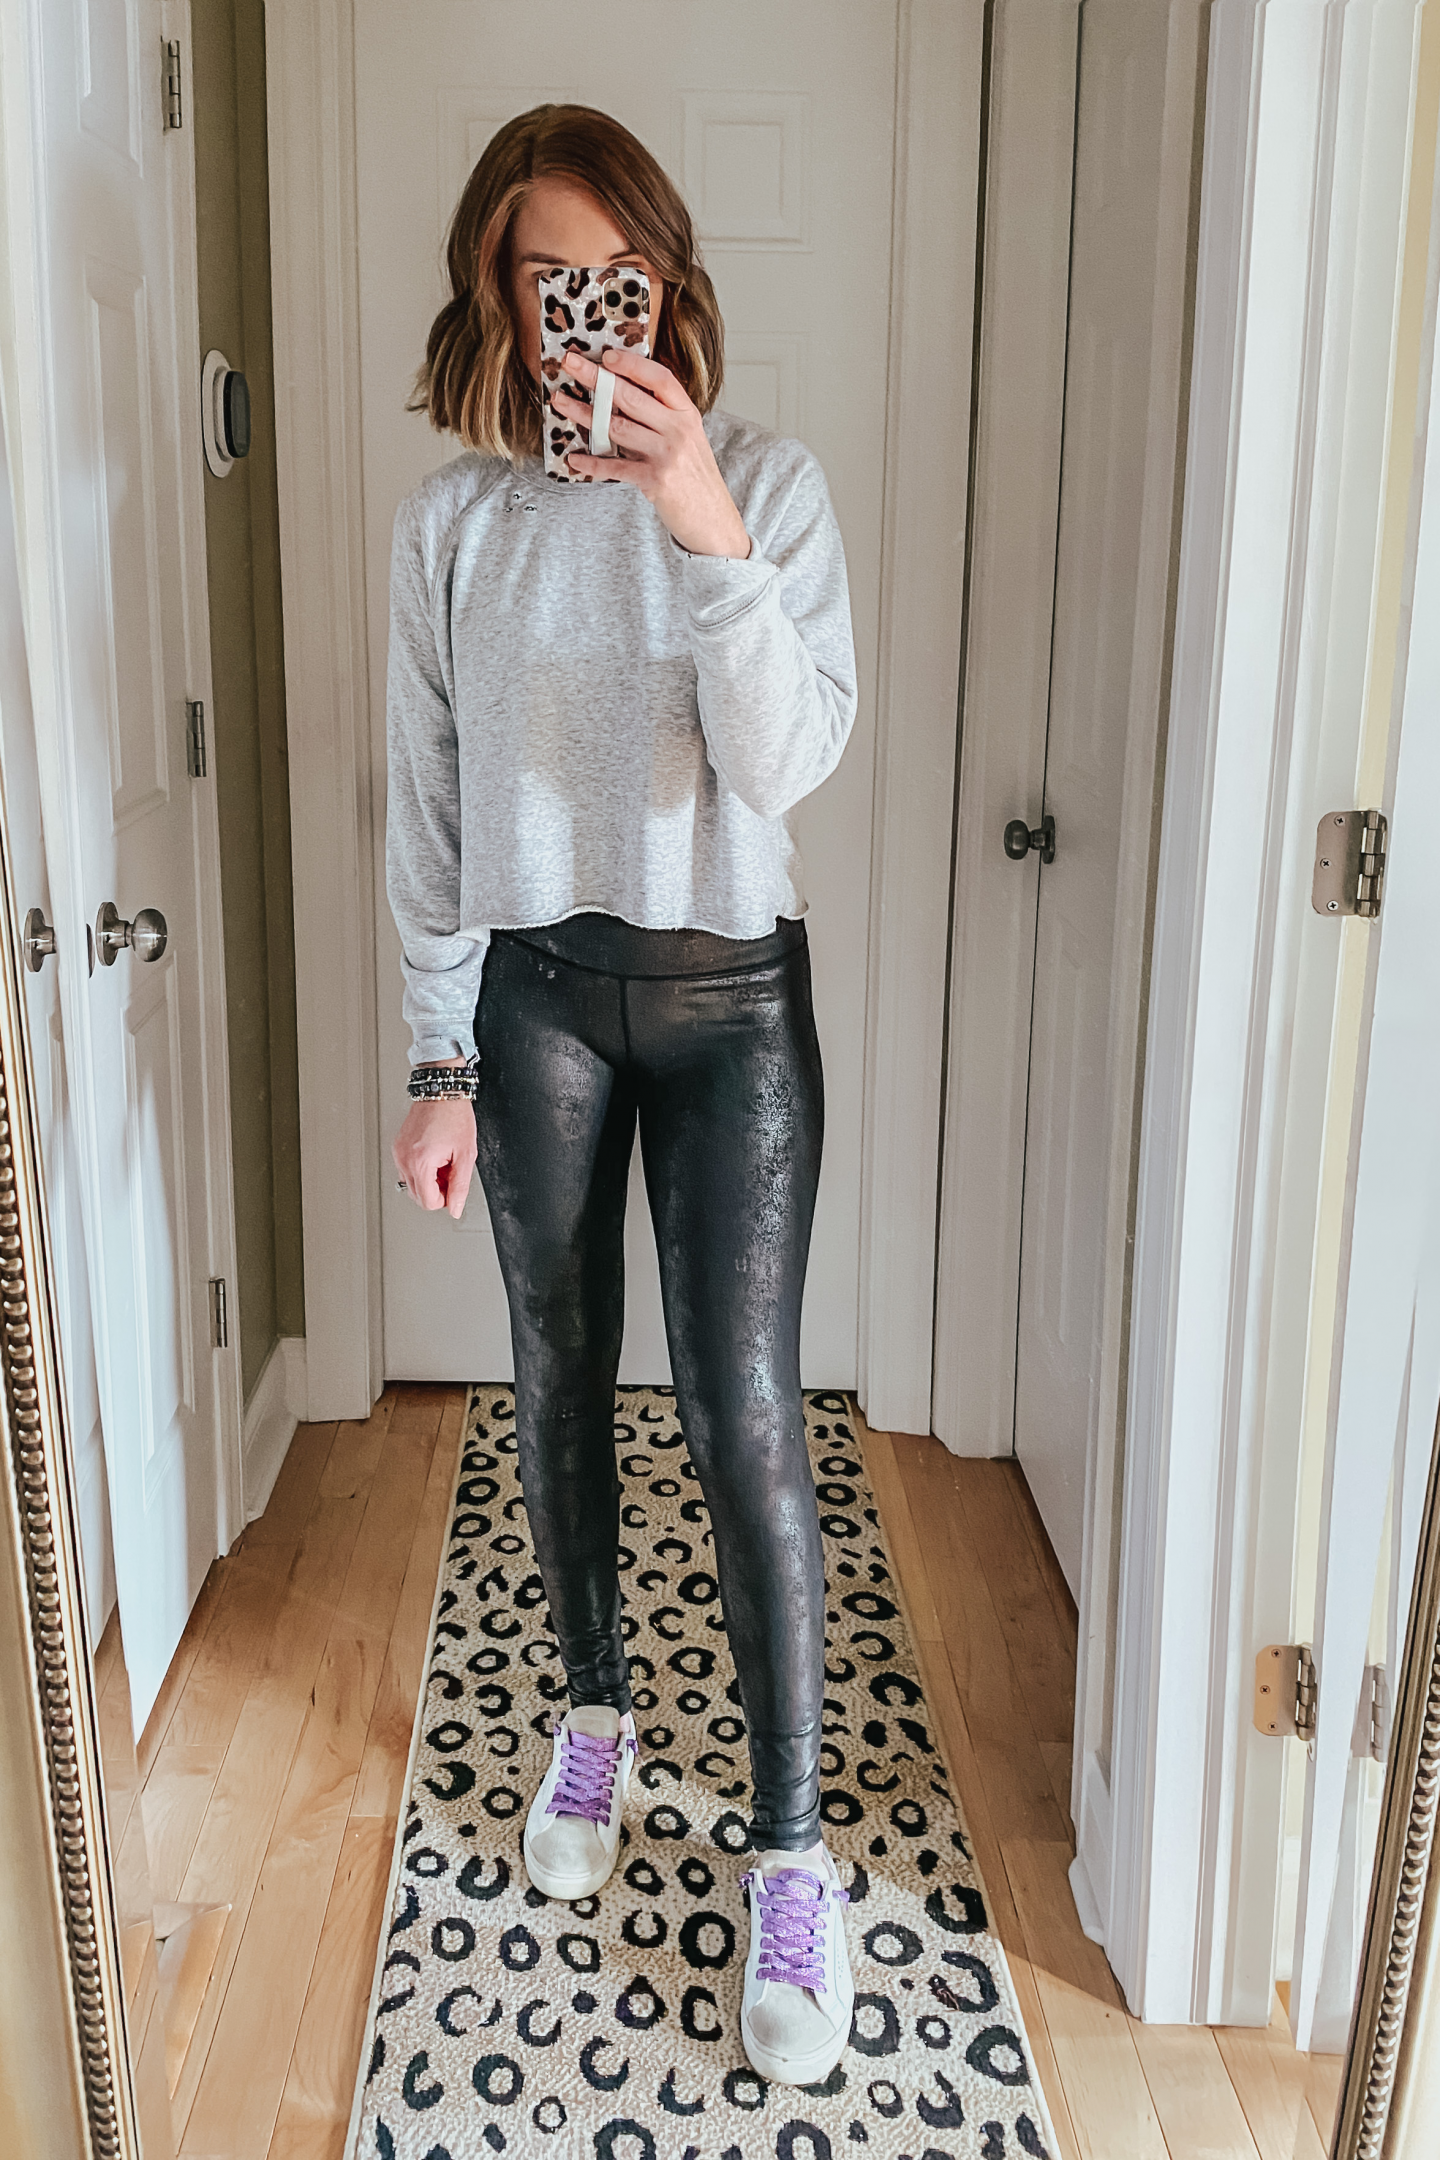 Spanx Leggings Review and the Best Dupes